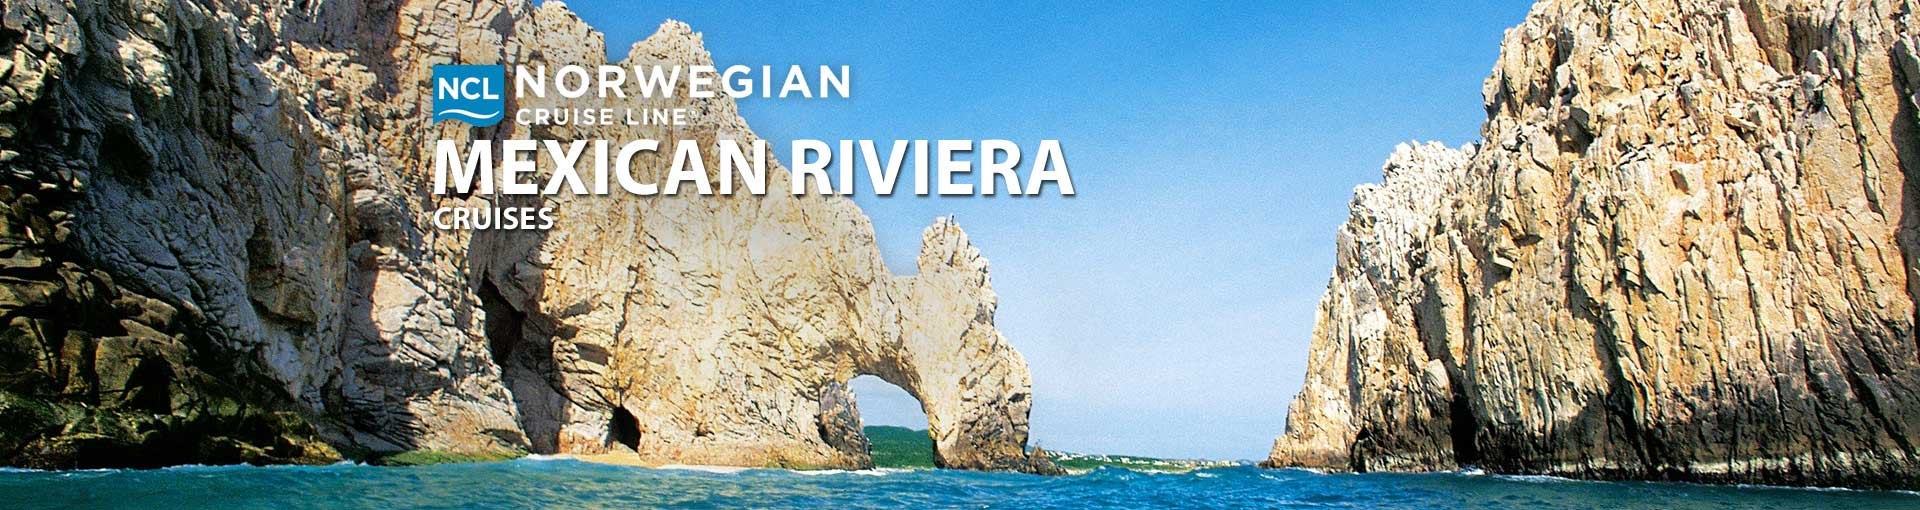 norwegian mexican riviera cruises, 2019 and 2020 mexican riviera